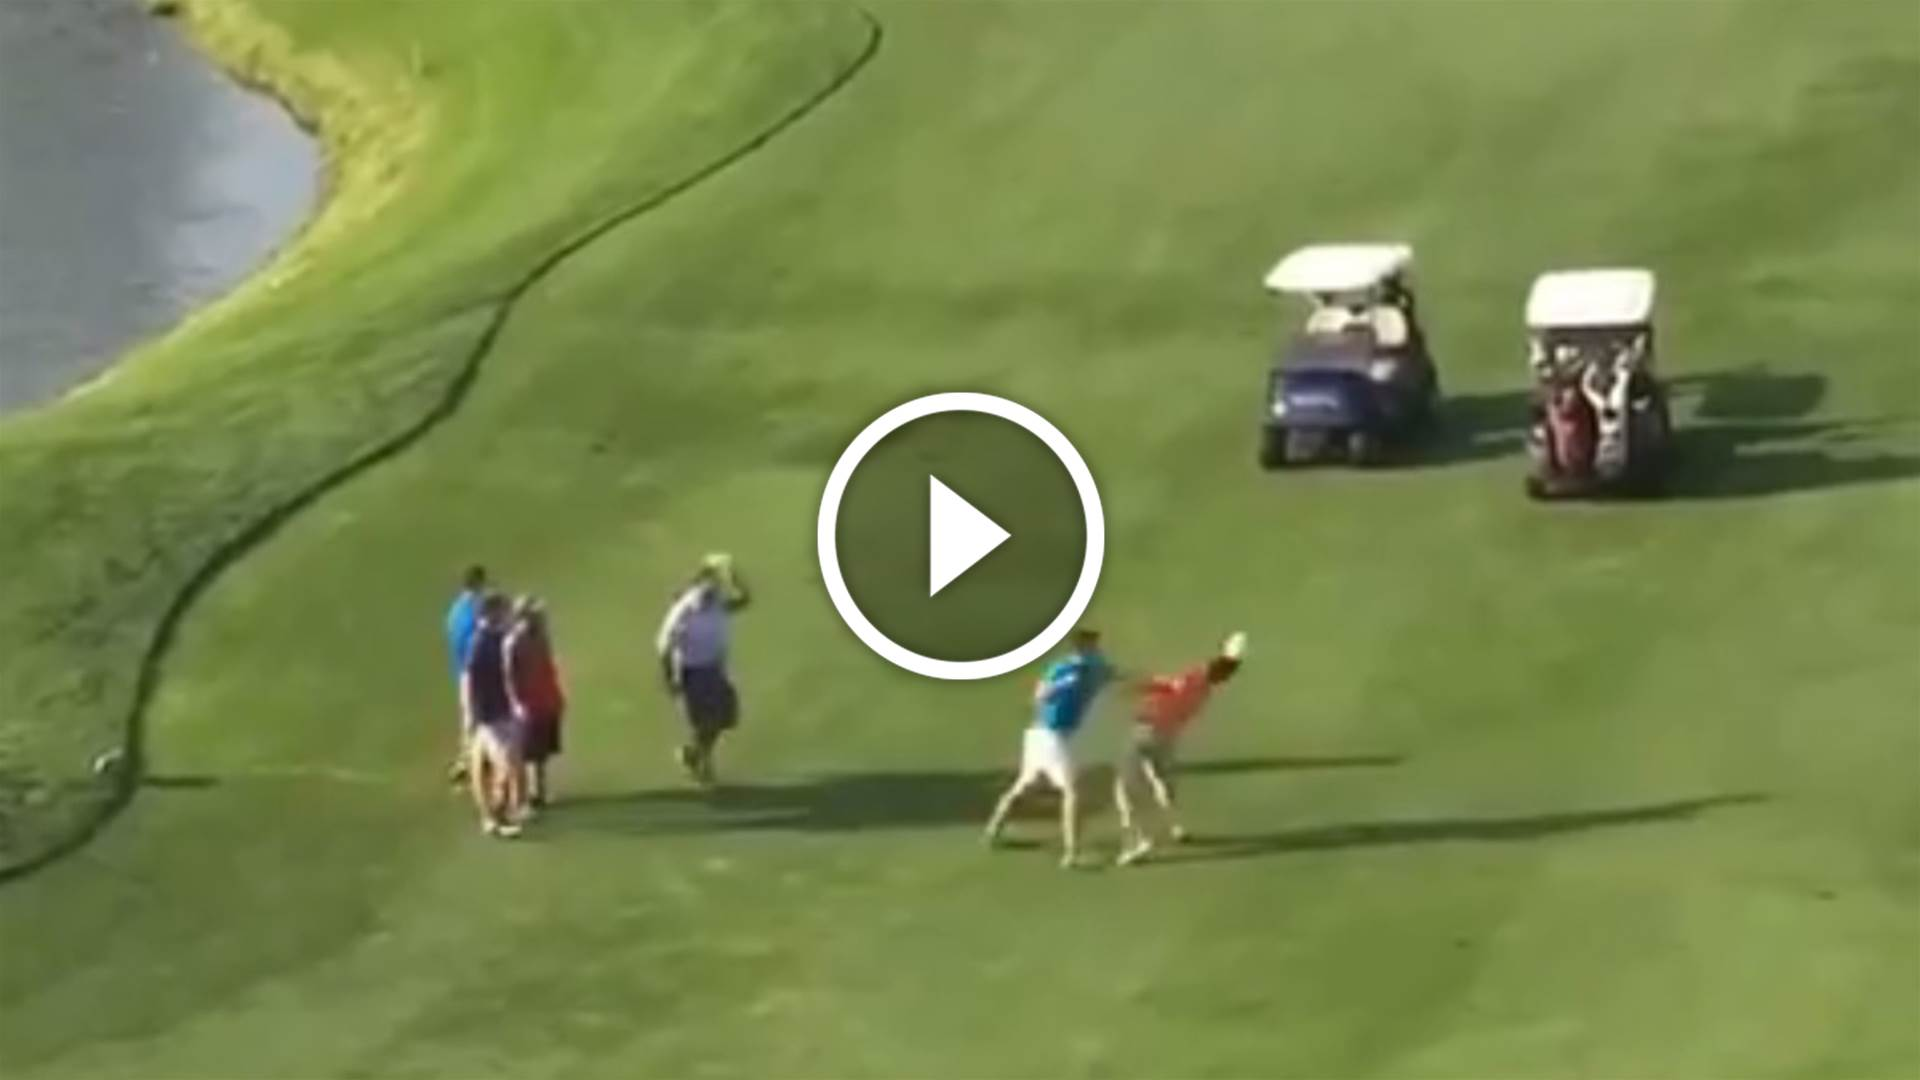 VIDEO: Golfers punch on over missed putt